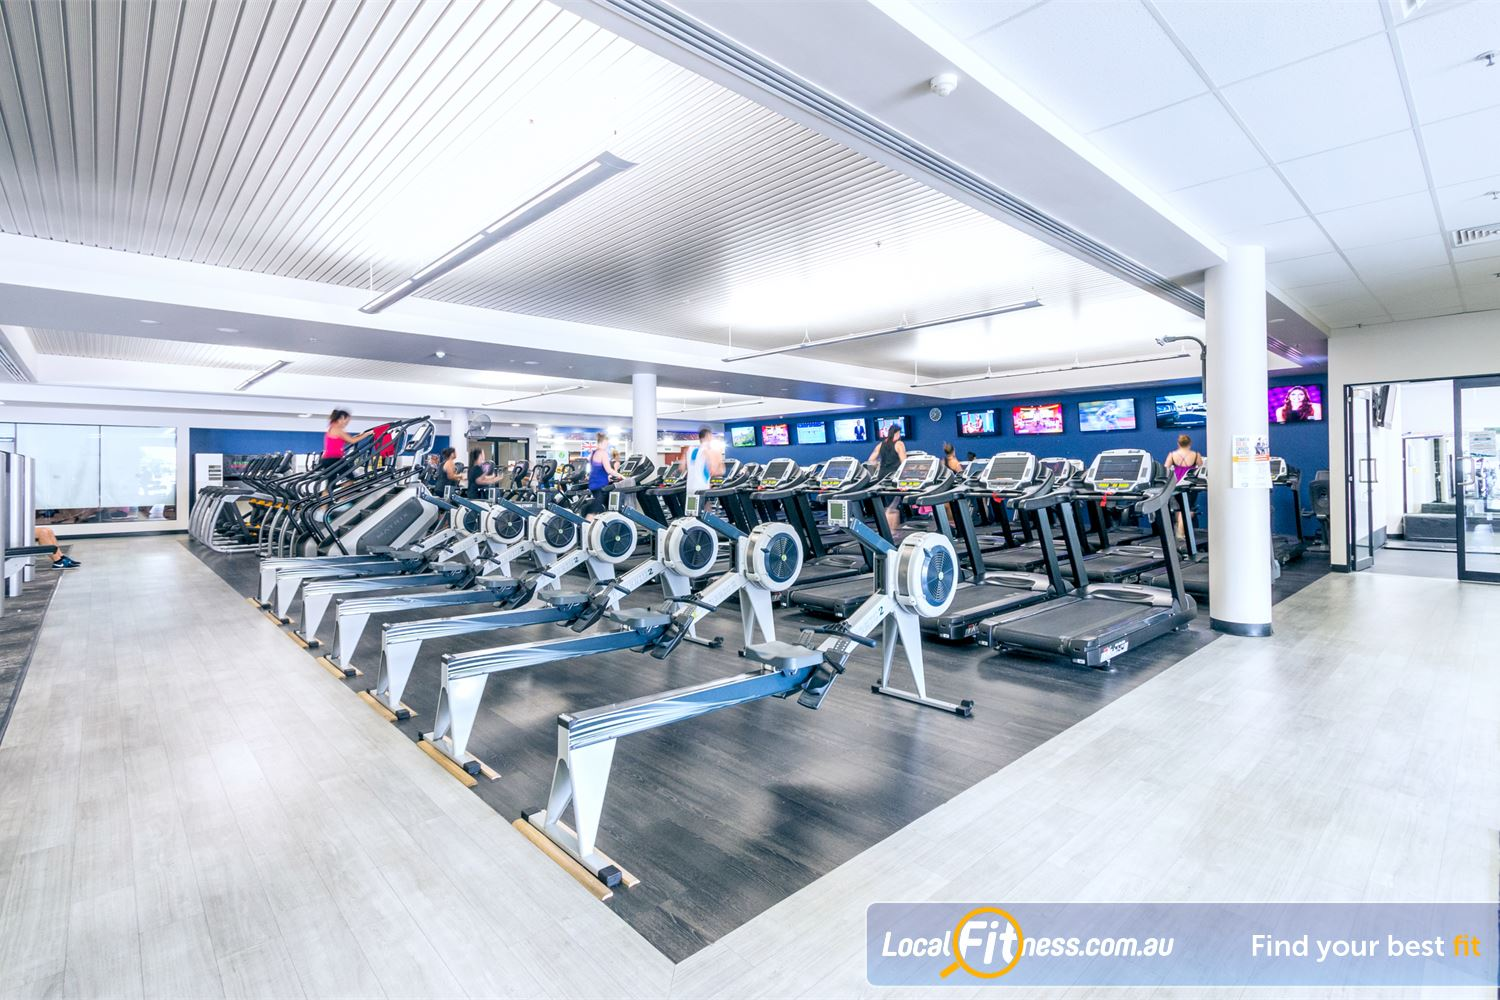 Goodlife Health Clubs Near Herston Multiple rowers so you can enjoy indoor rowing.